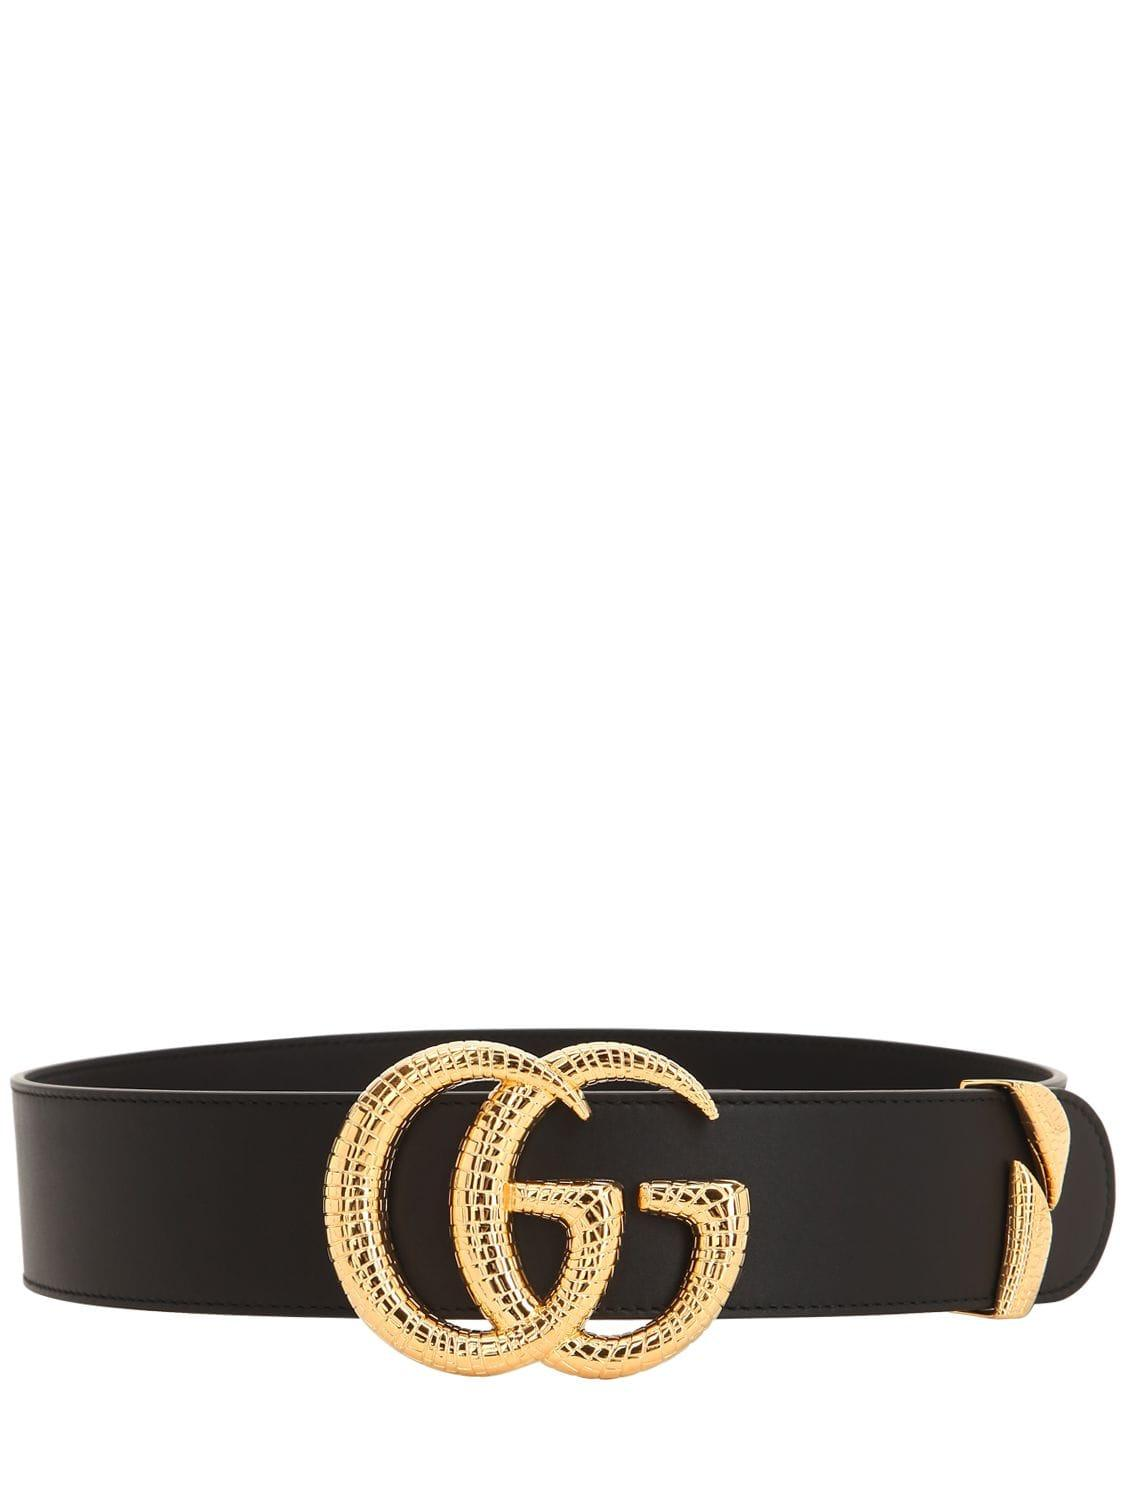 96211740ba2 Lyst - Gucci 50mm Gg Snake Buckle Leather Belt in Black